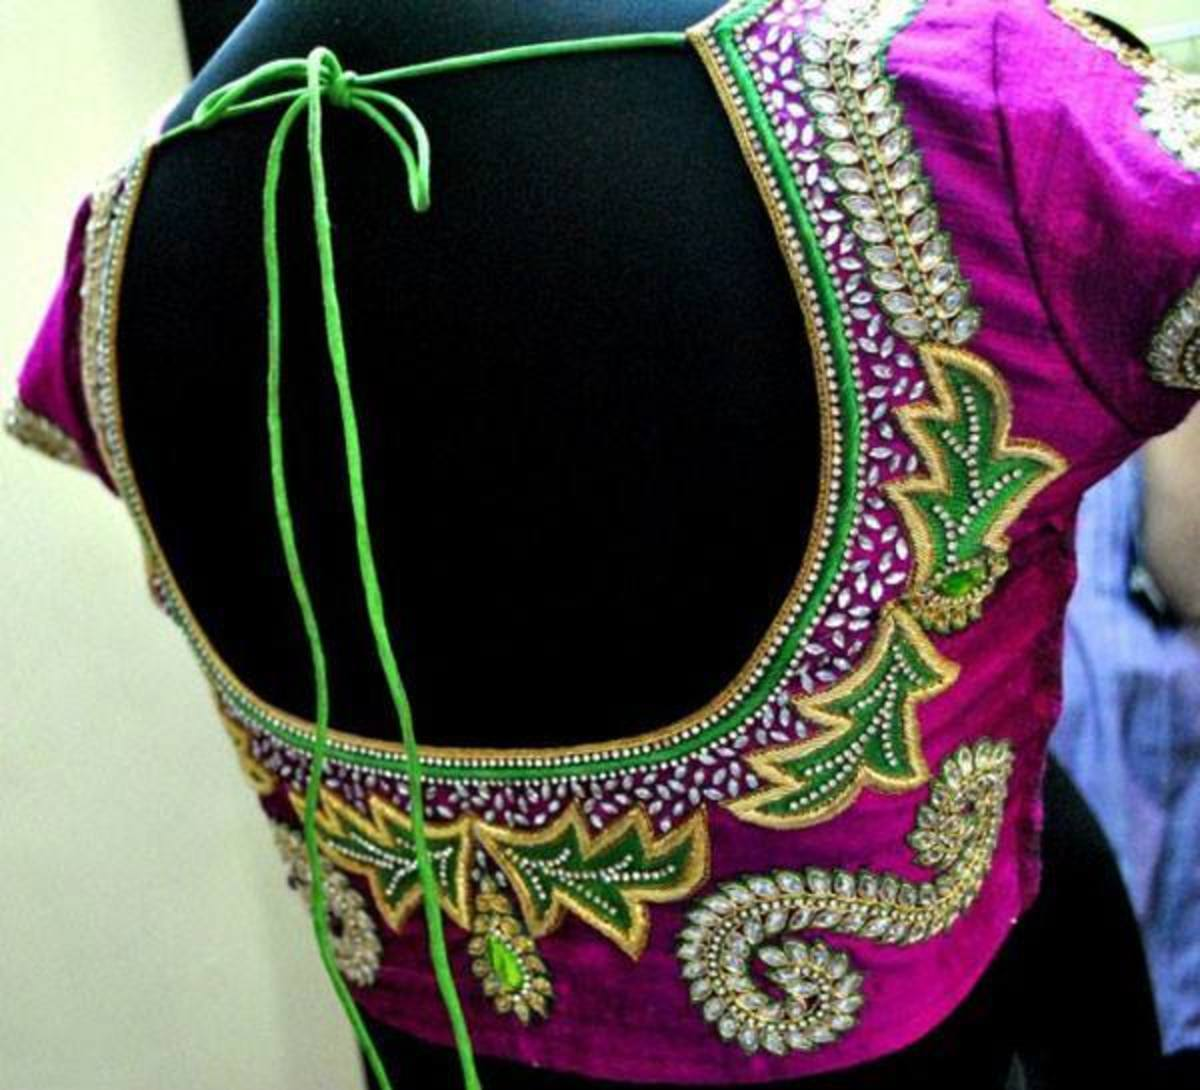 Magenta blouse with a green embroidery and embellishment.